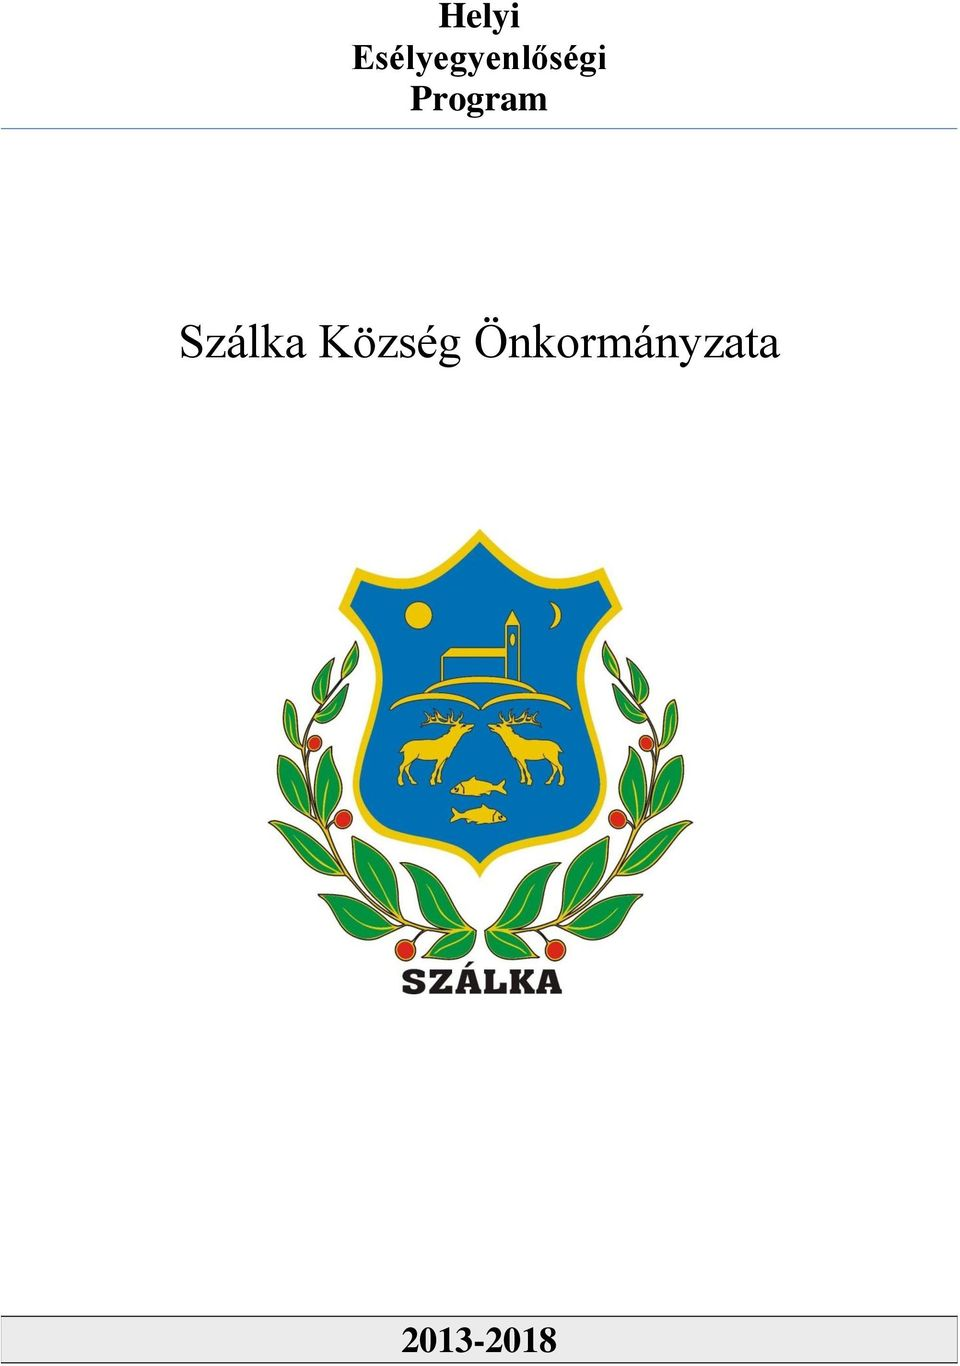 Program Szálka